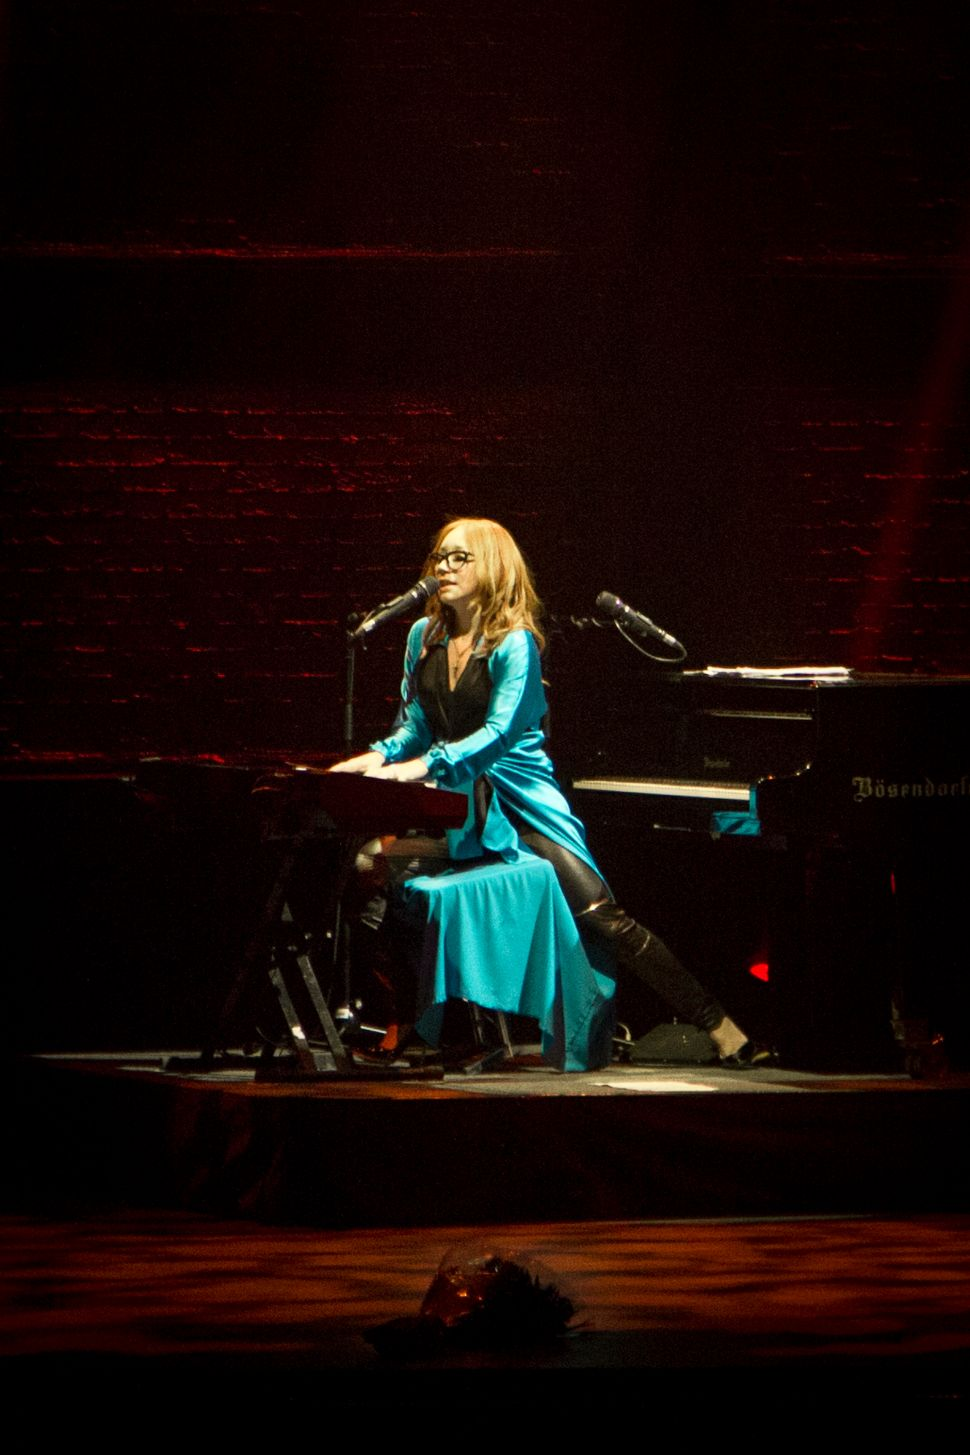 She's Still Got It: Tori Amos Goes Back to Basics at the Beacon Theatre